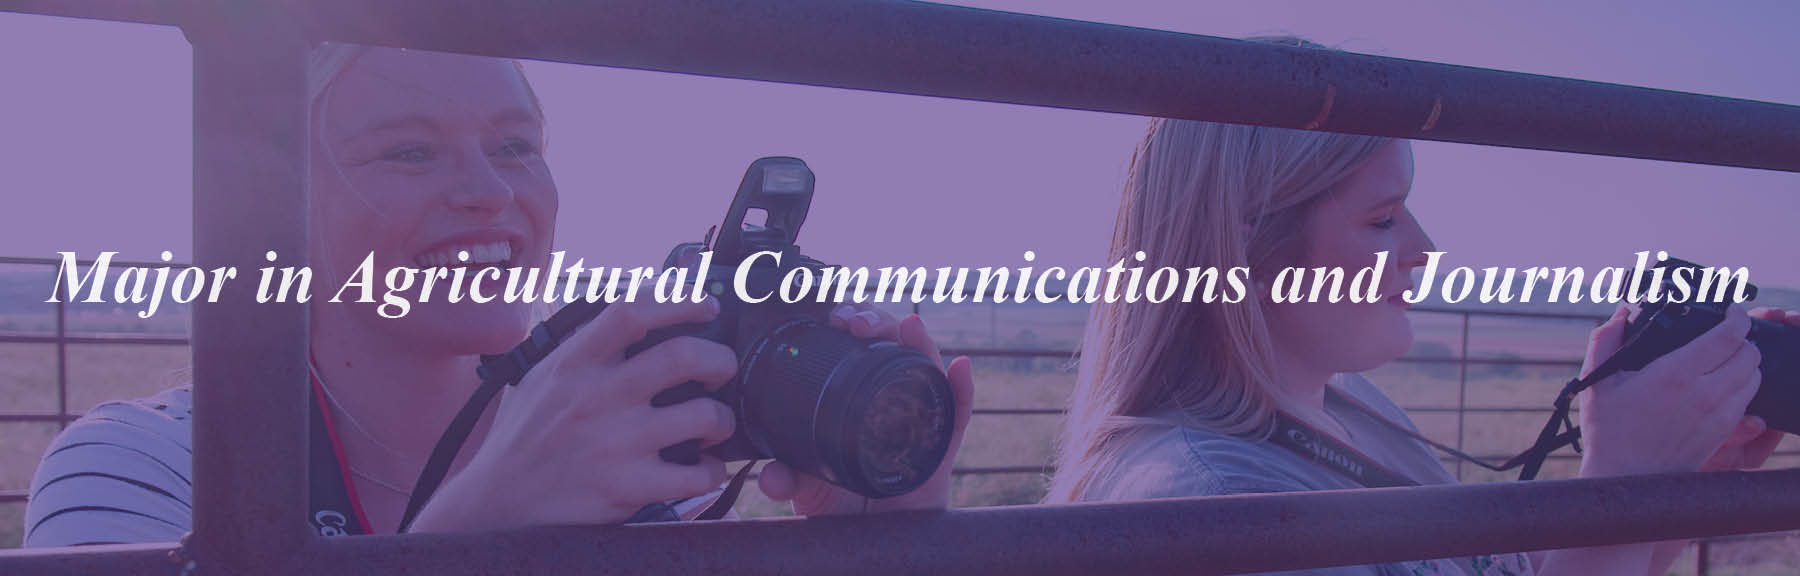 Consider majoring in Agricultural Communications and Journalism